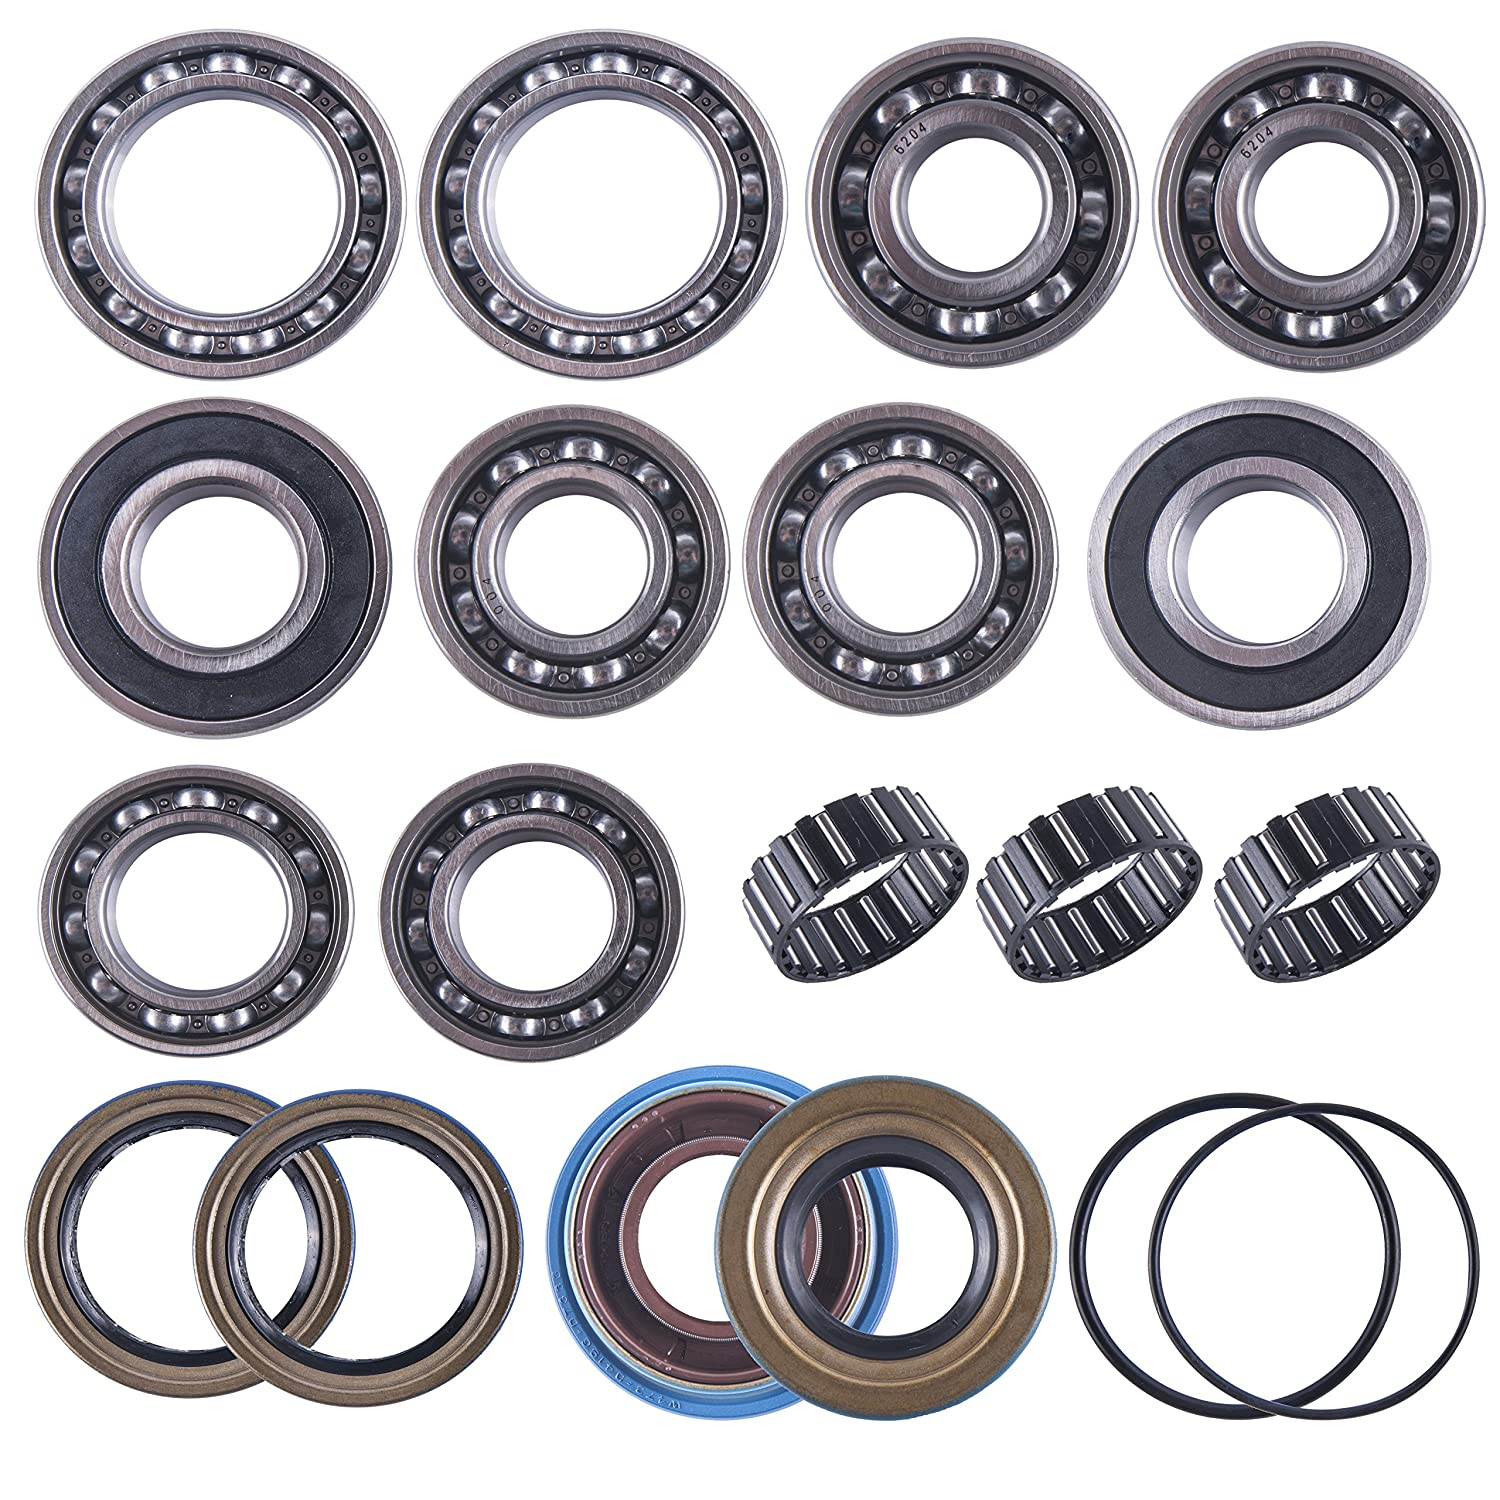 East Lake Axle rear differential bearing /& seal kit compatible with Polaris Sportsman 400//500 2001 2002-2010